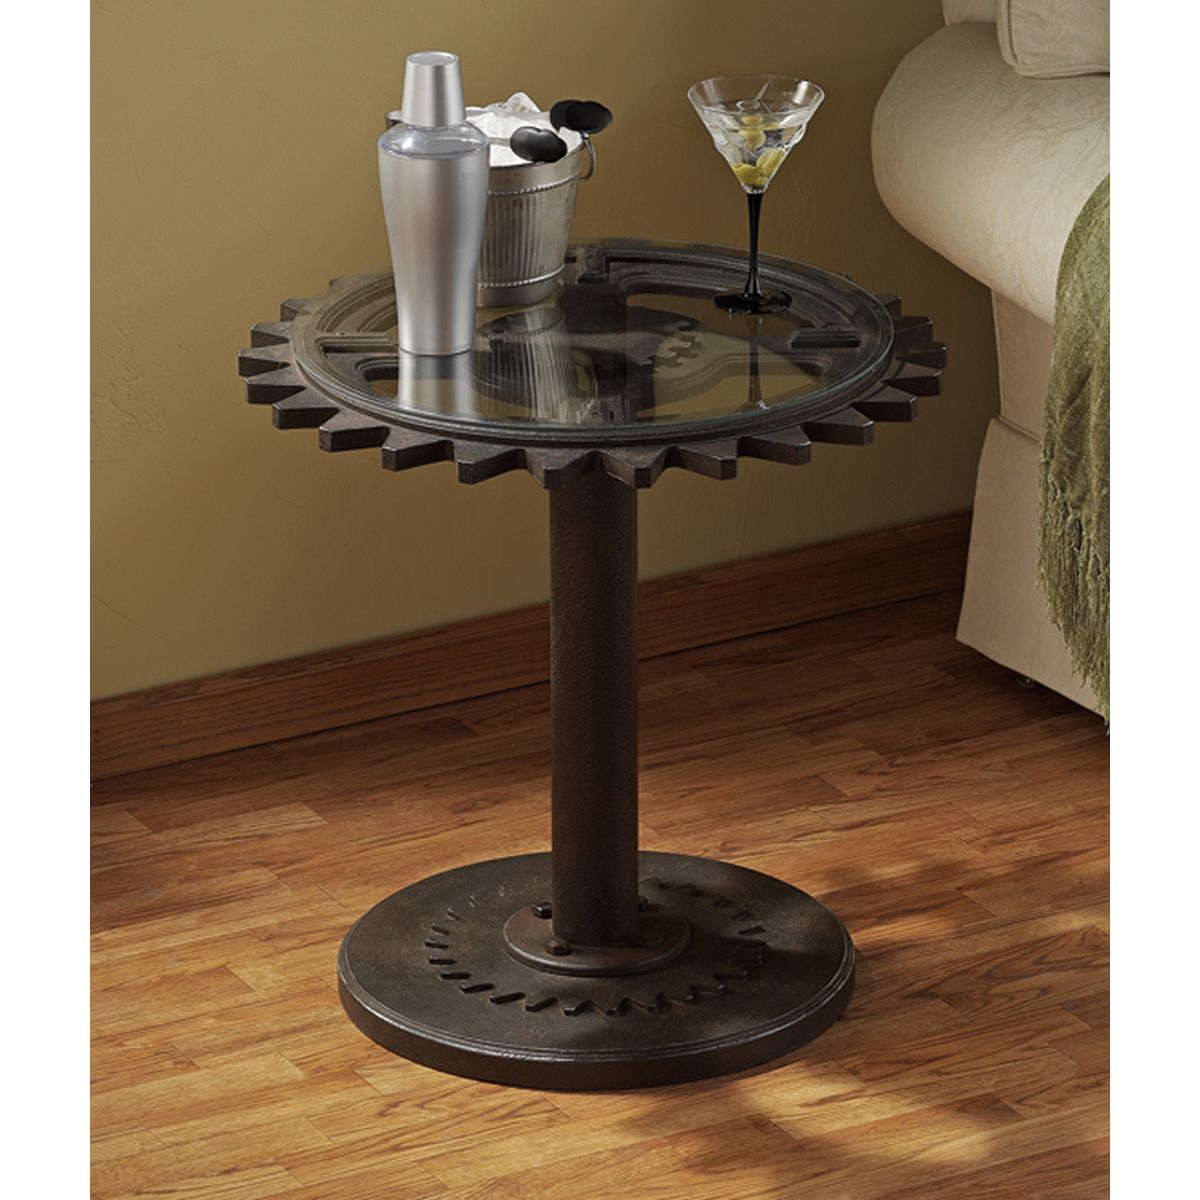 Elegant Authentic Steampunk Industrial Age Gears Side Table